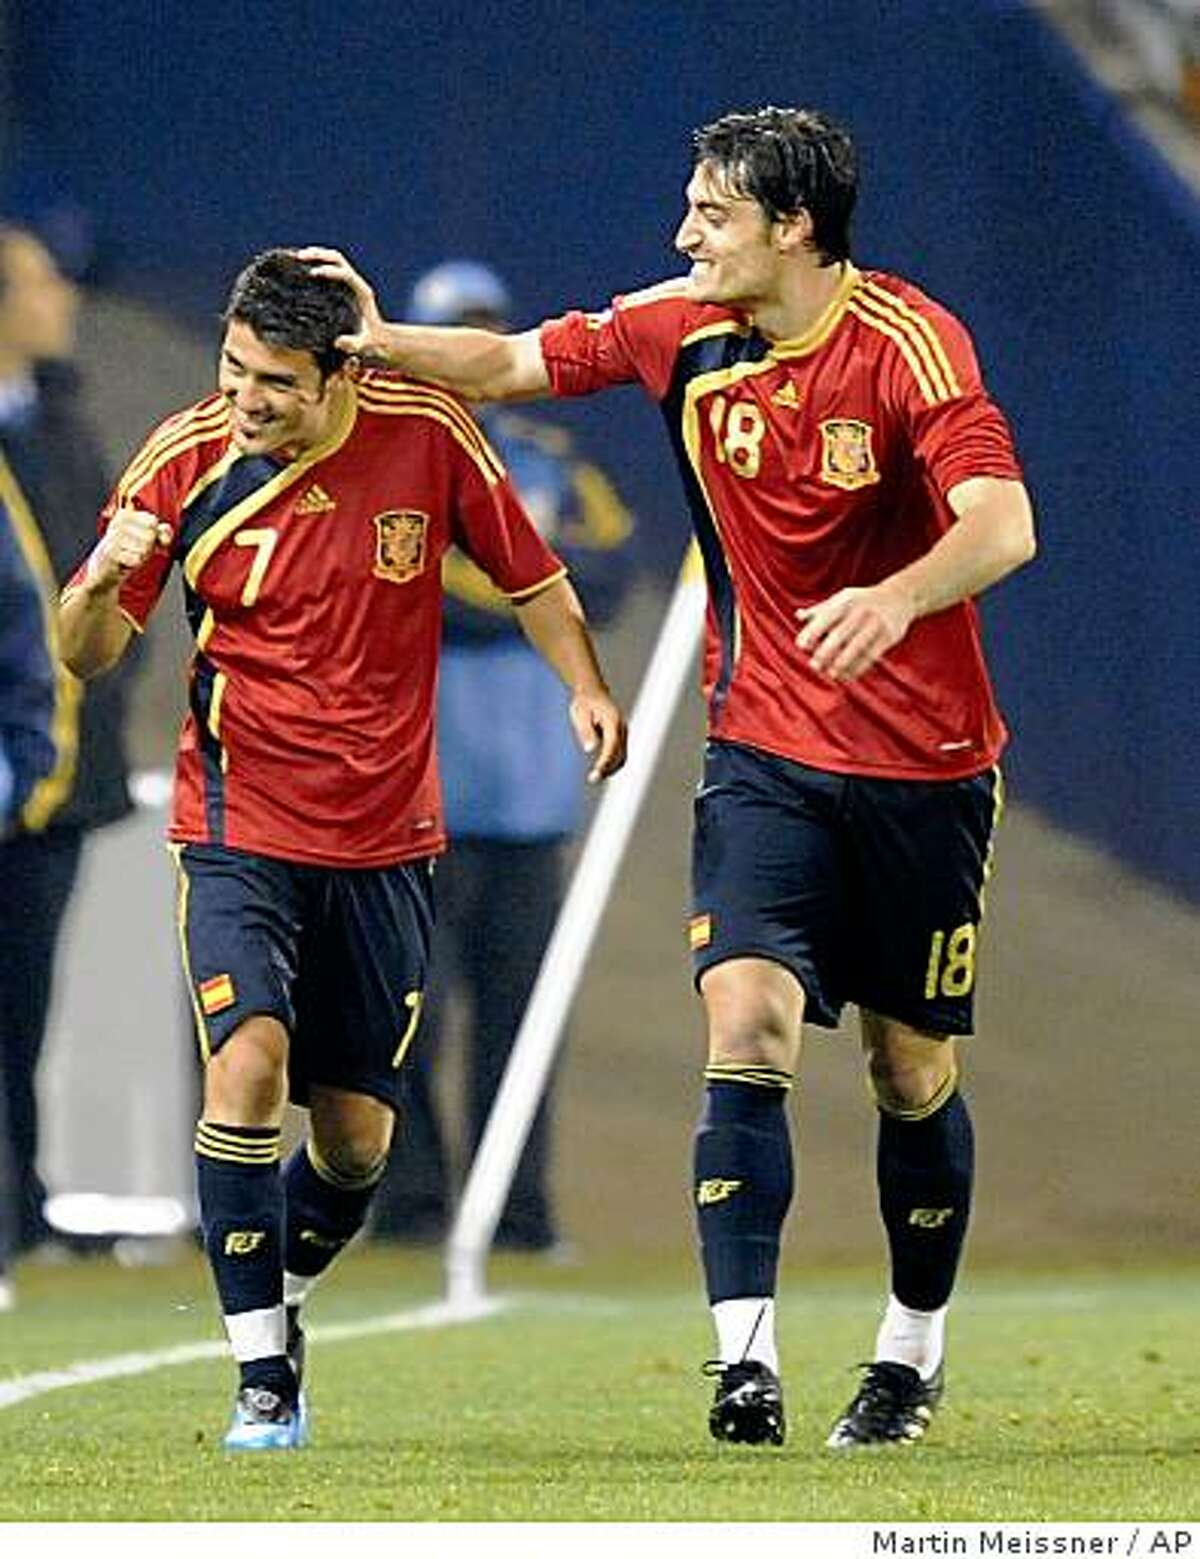 Spain's David Villa, left, reacts after scoring a goal with fellow team member Spain's Albert Riera during their Confederations Cup Group A soccer match against Spain at Free State Stadium in Bloemfontein, South Africa, Saturday, June 20, 2009. (AP Photo/Martin Meissner)